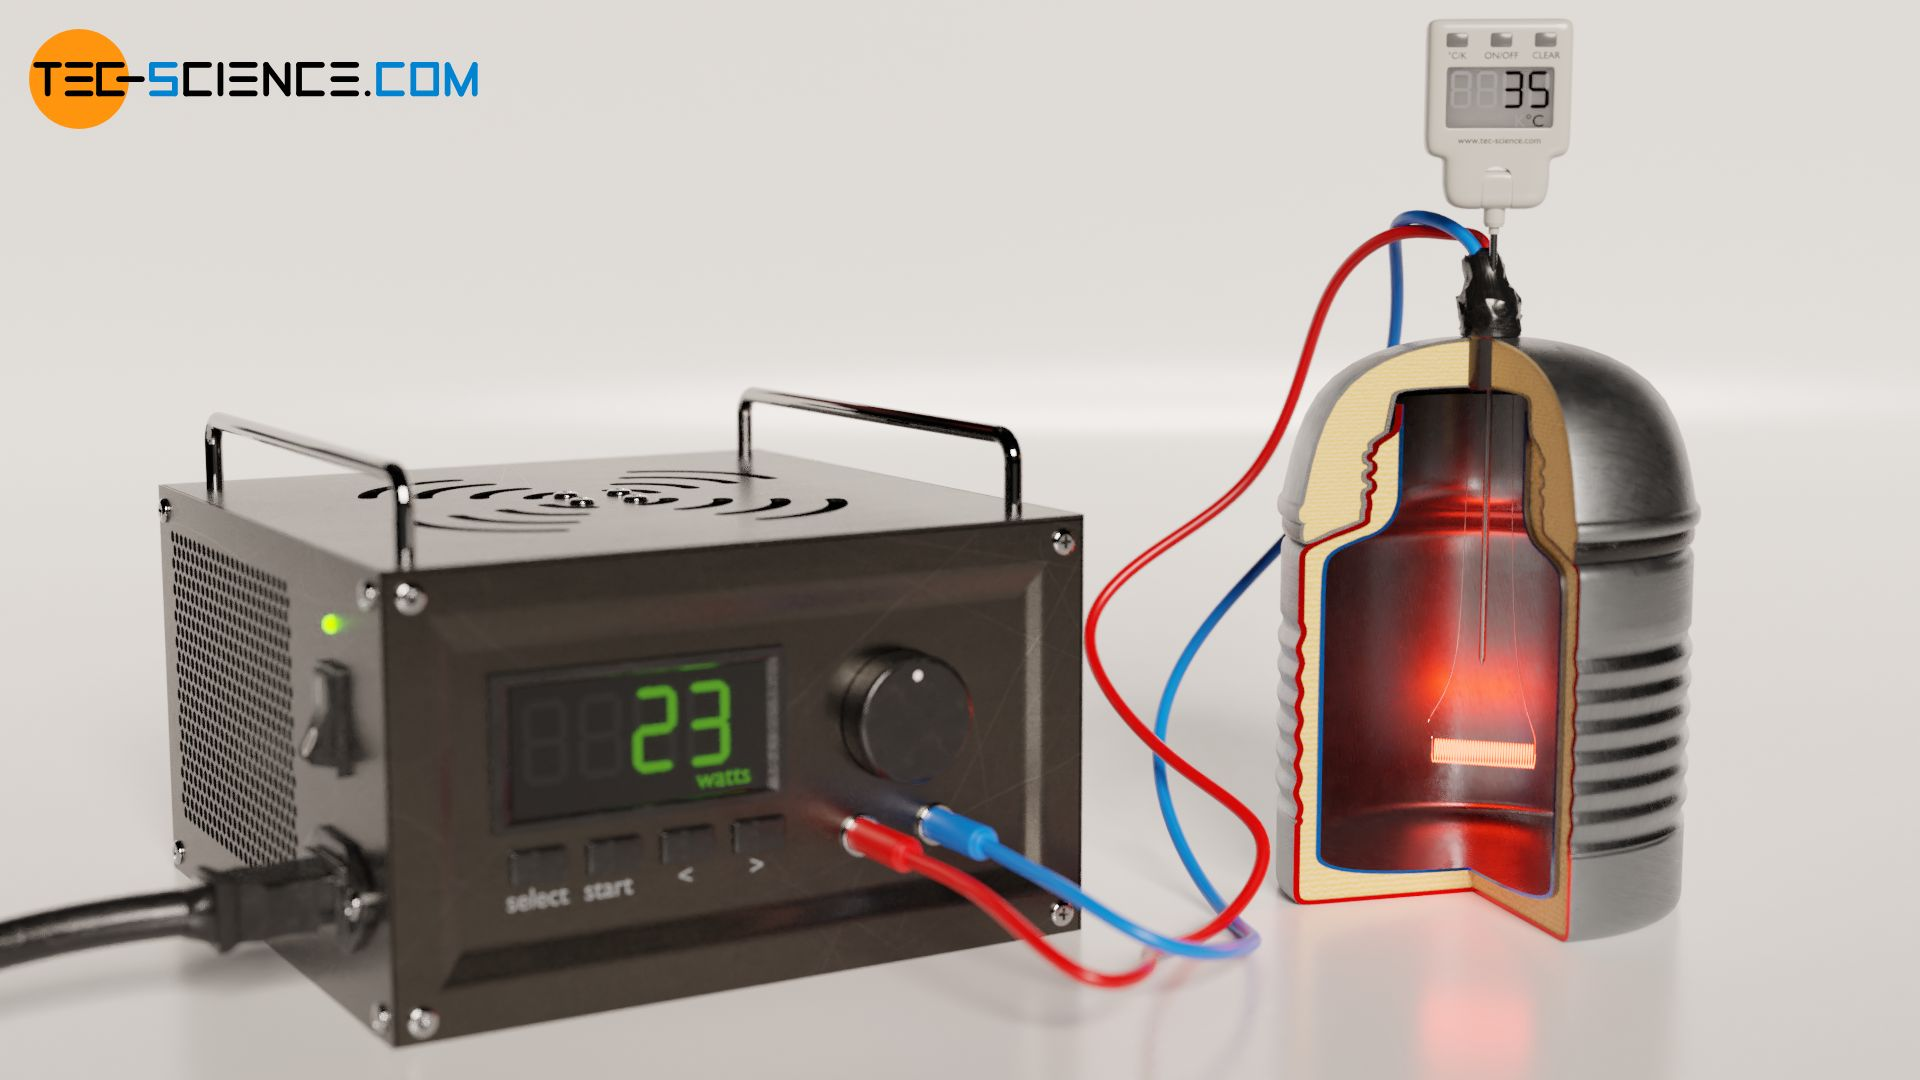 Experiment to investigate the relationship between change of internal energy and temperature change in ideal gases